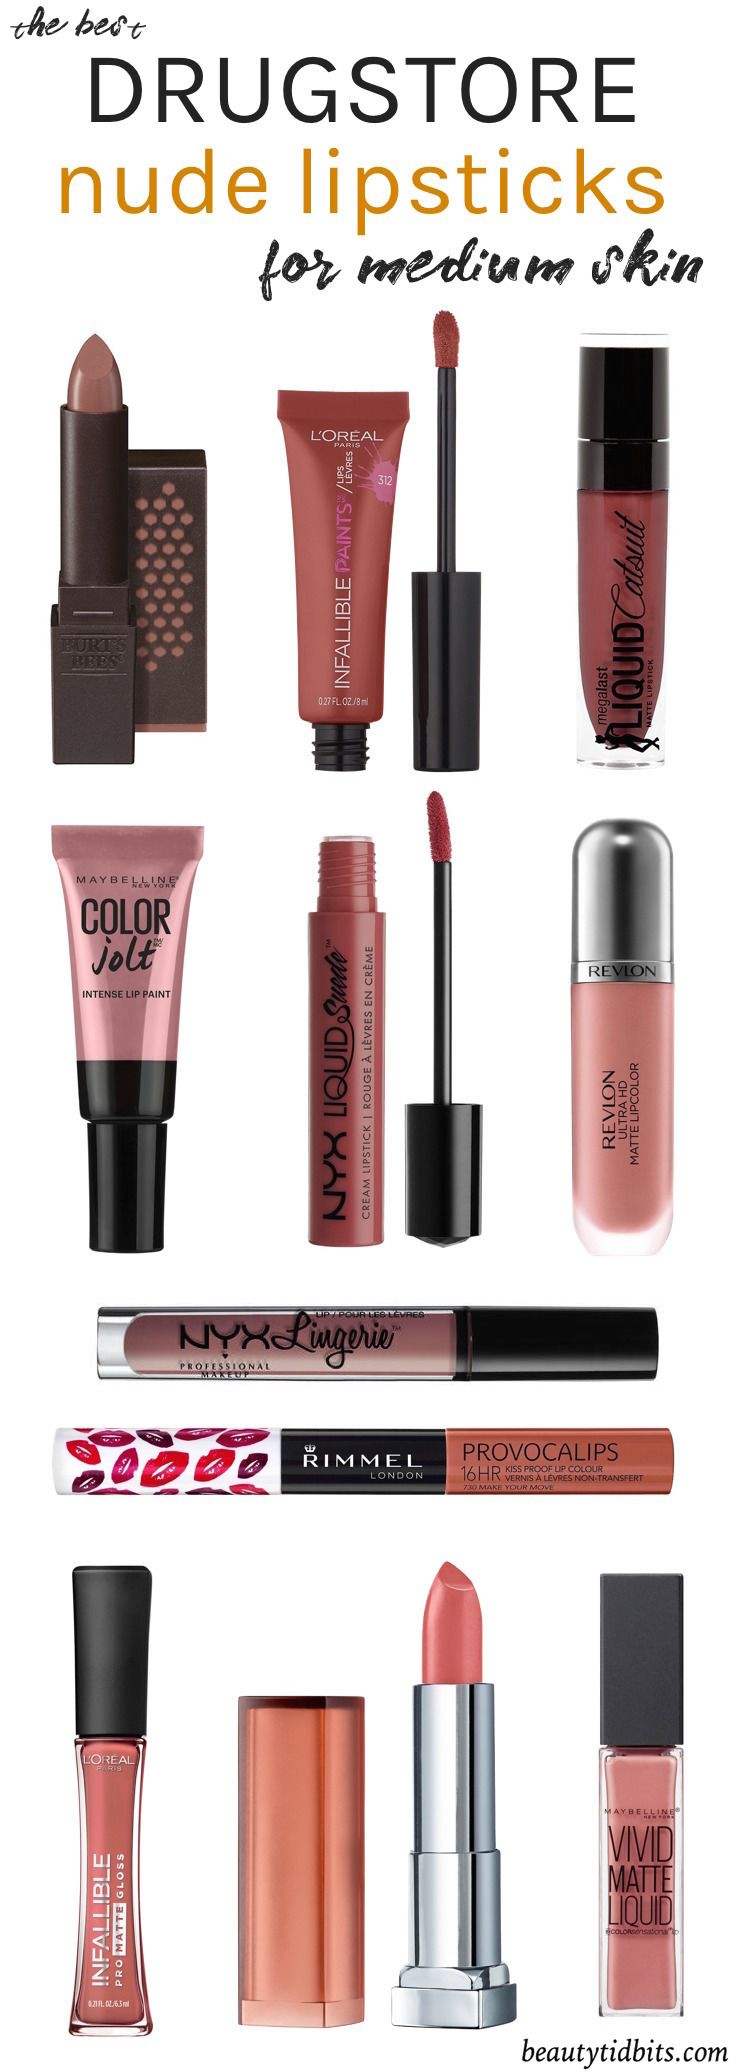 Colour care london lipstick price - 25 Best Ideas About Lip Colors On Pinterest Lipstick Colors Matte Lips And Lip Sticks